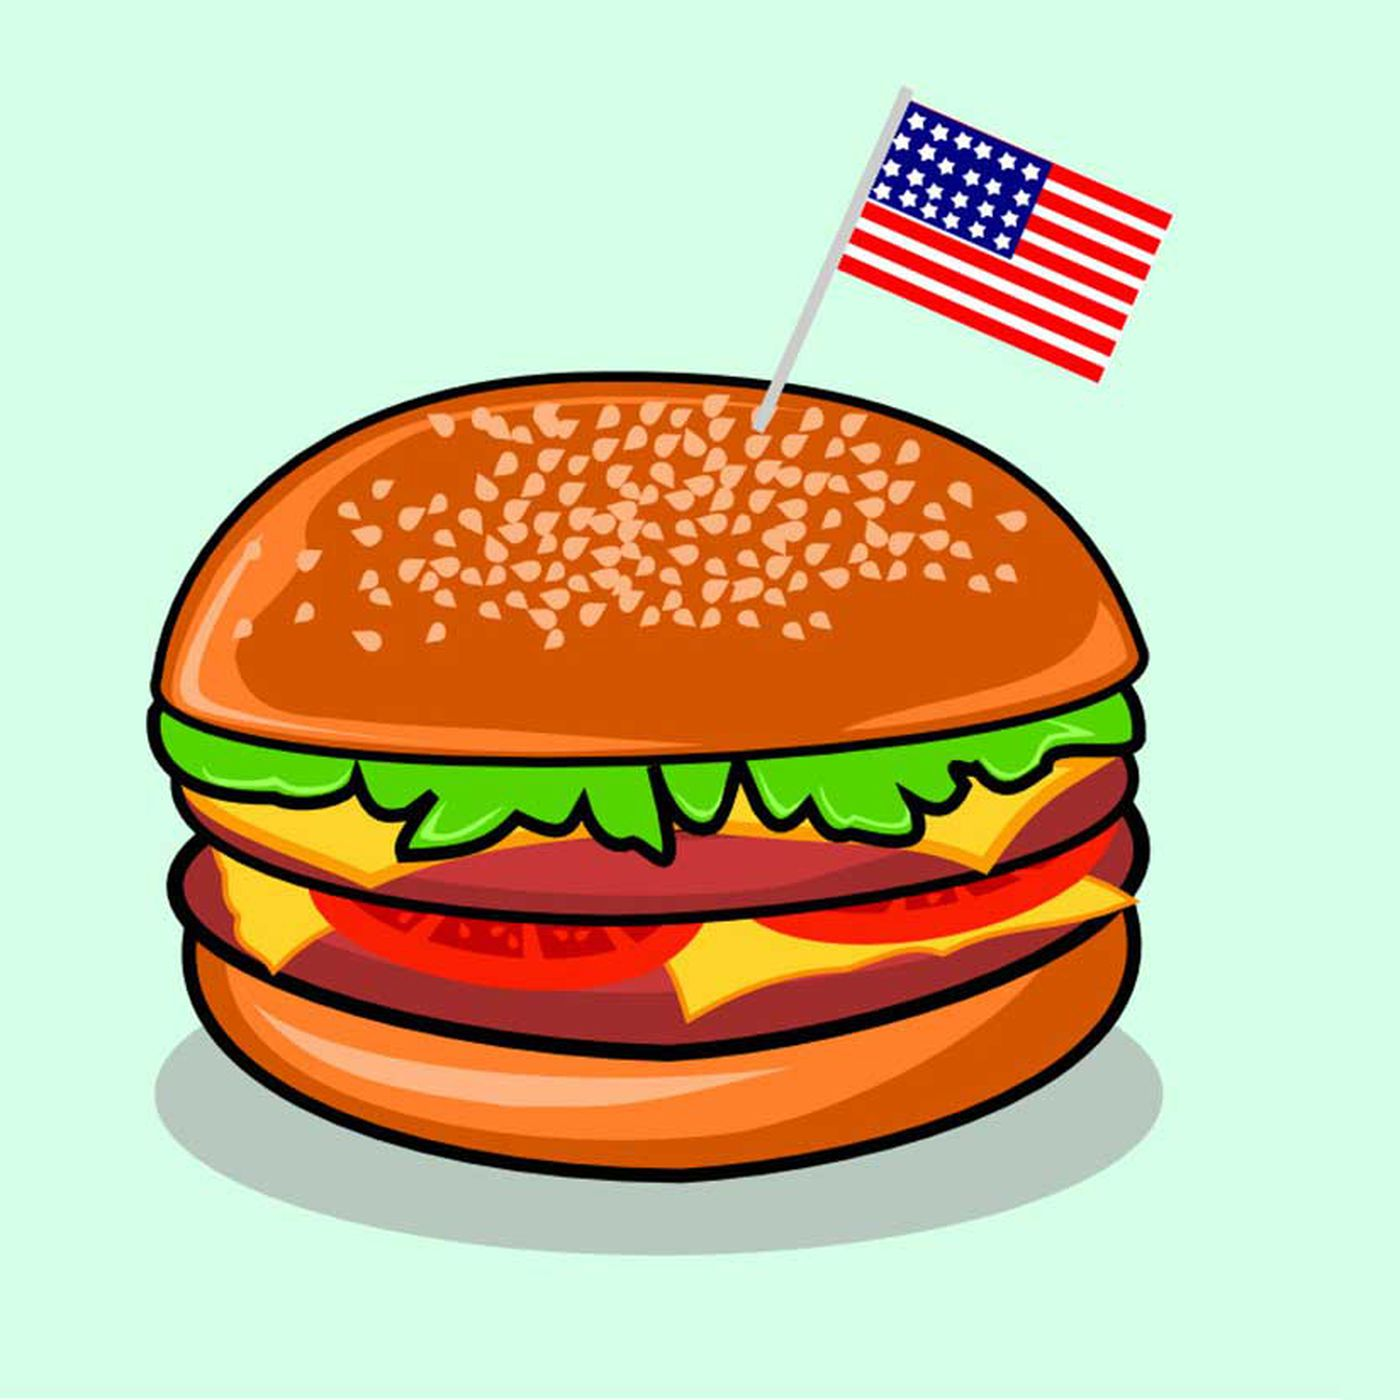 The average price of. Cheeseburger clipart double cheeseburger